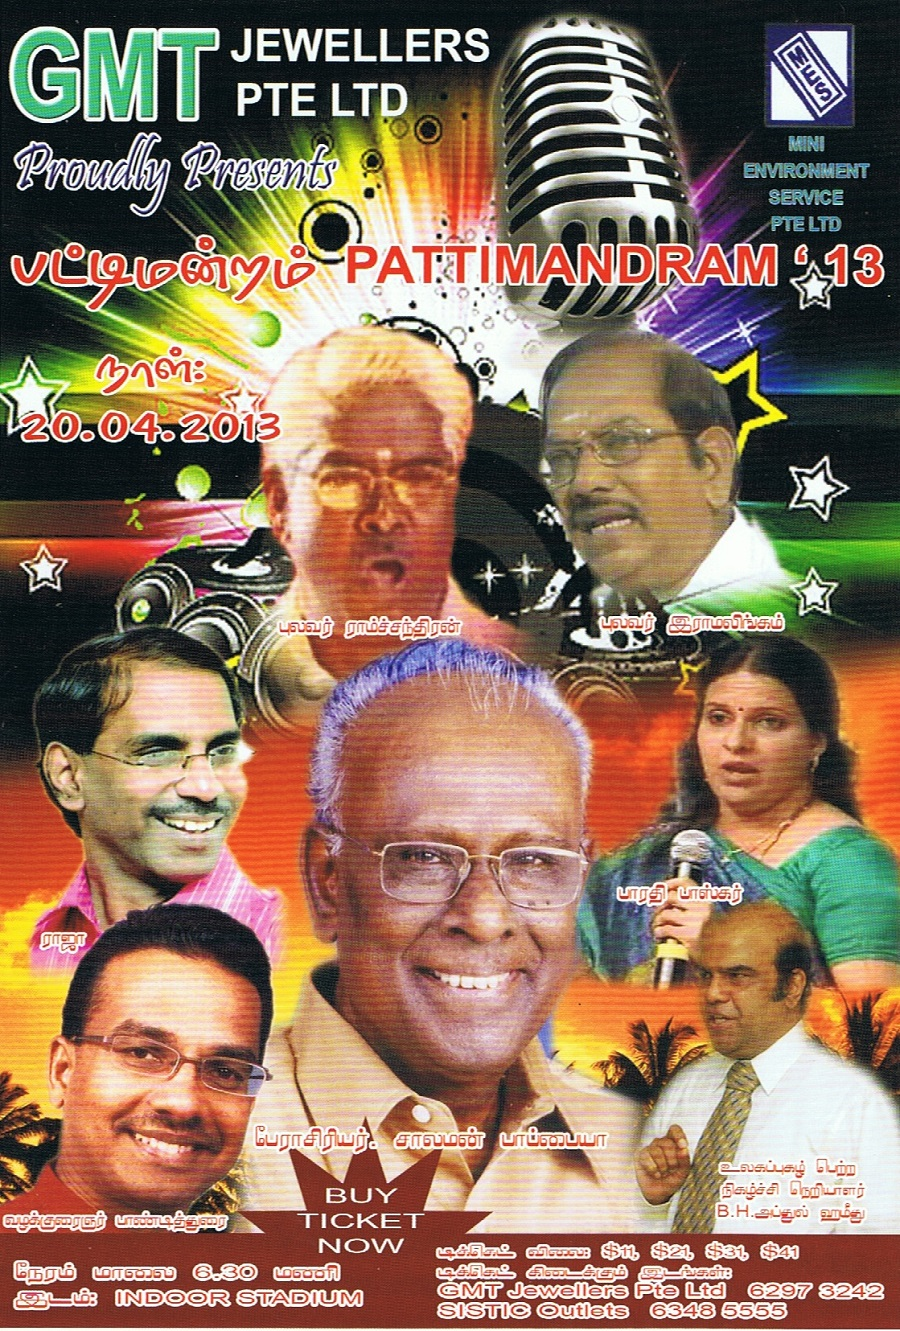 GMT Jewellers Pte Ltd Proudly Presents PATTIMANDRAM 2013 .A event featuring Solomon Pappiah live on 20th April 2013 at 06:30 pm at Singapore Indoor Stadium.